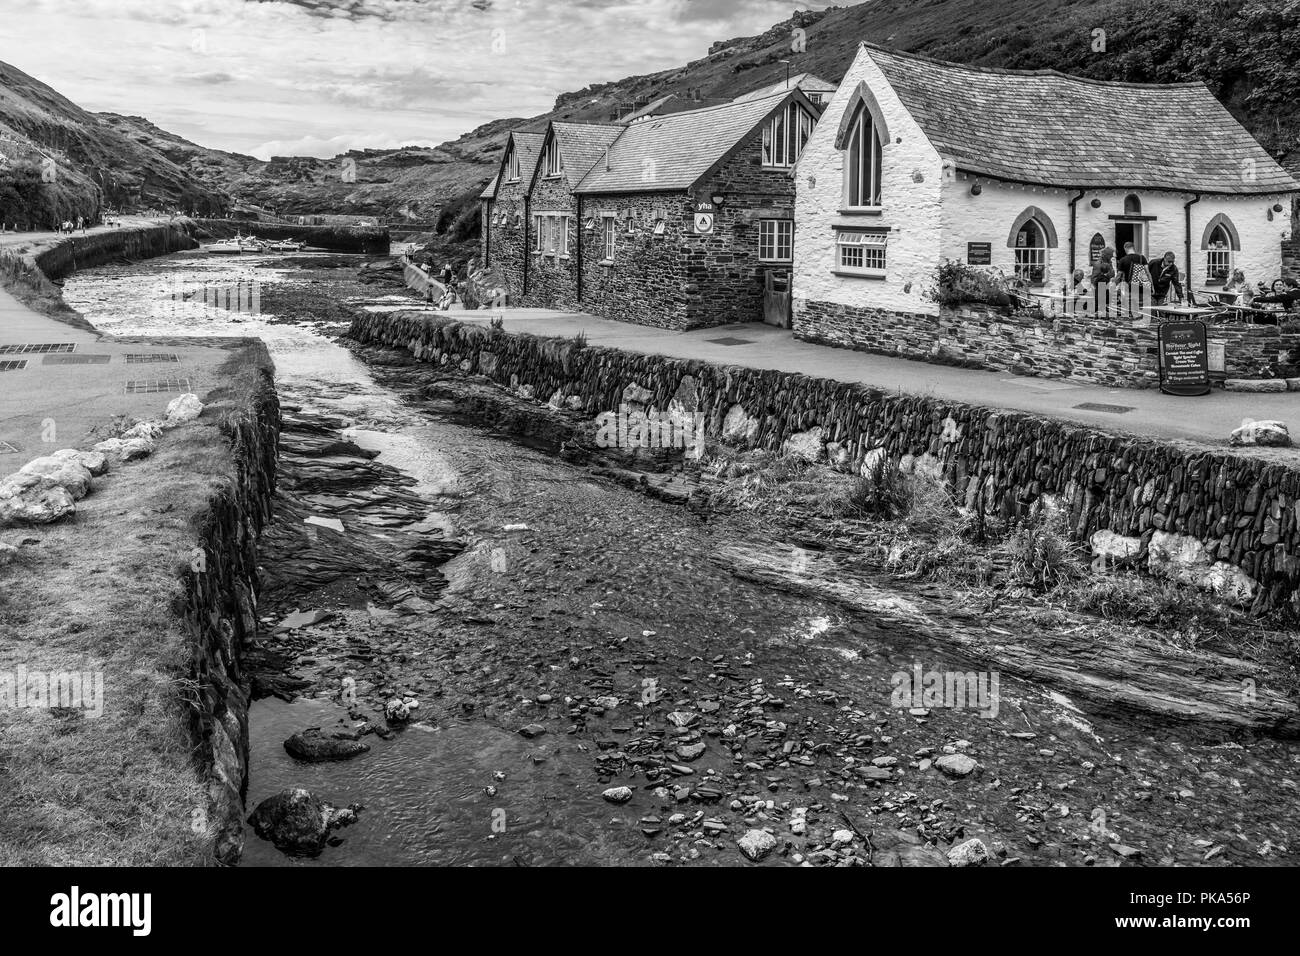 Tourists enjoy a brief respite from the persistent storms that pass over the picturesque little harbour at Boscastle on the North Cornish coast. - Stock Image